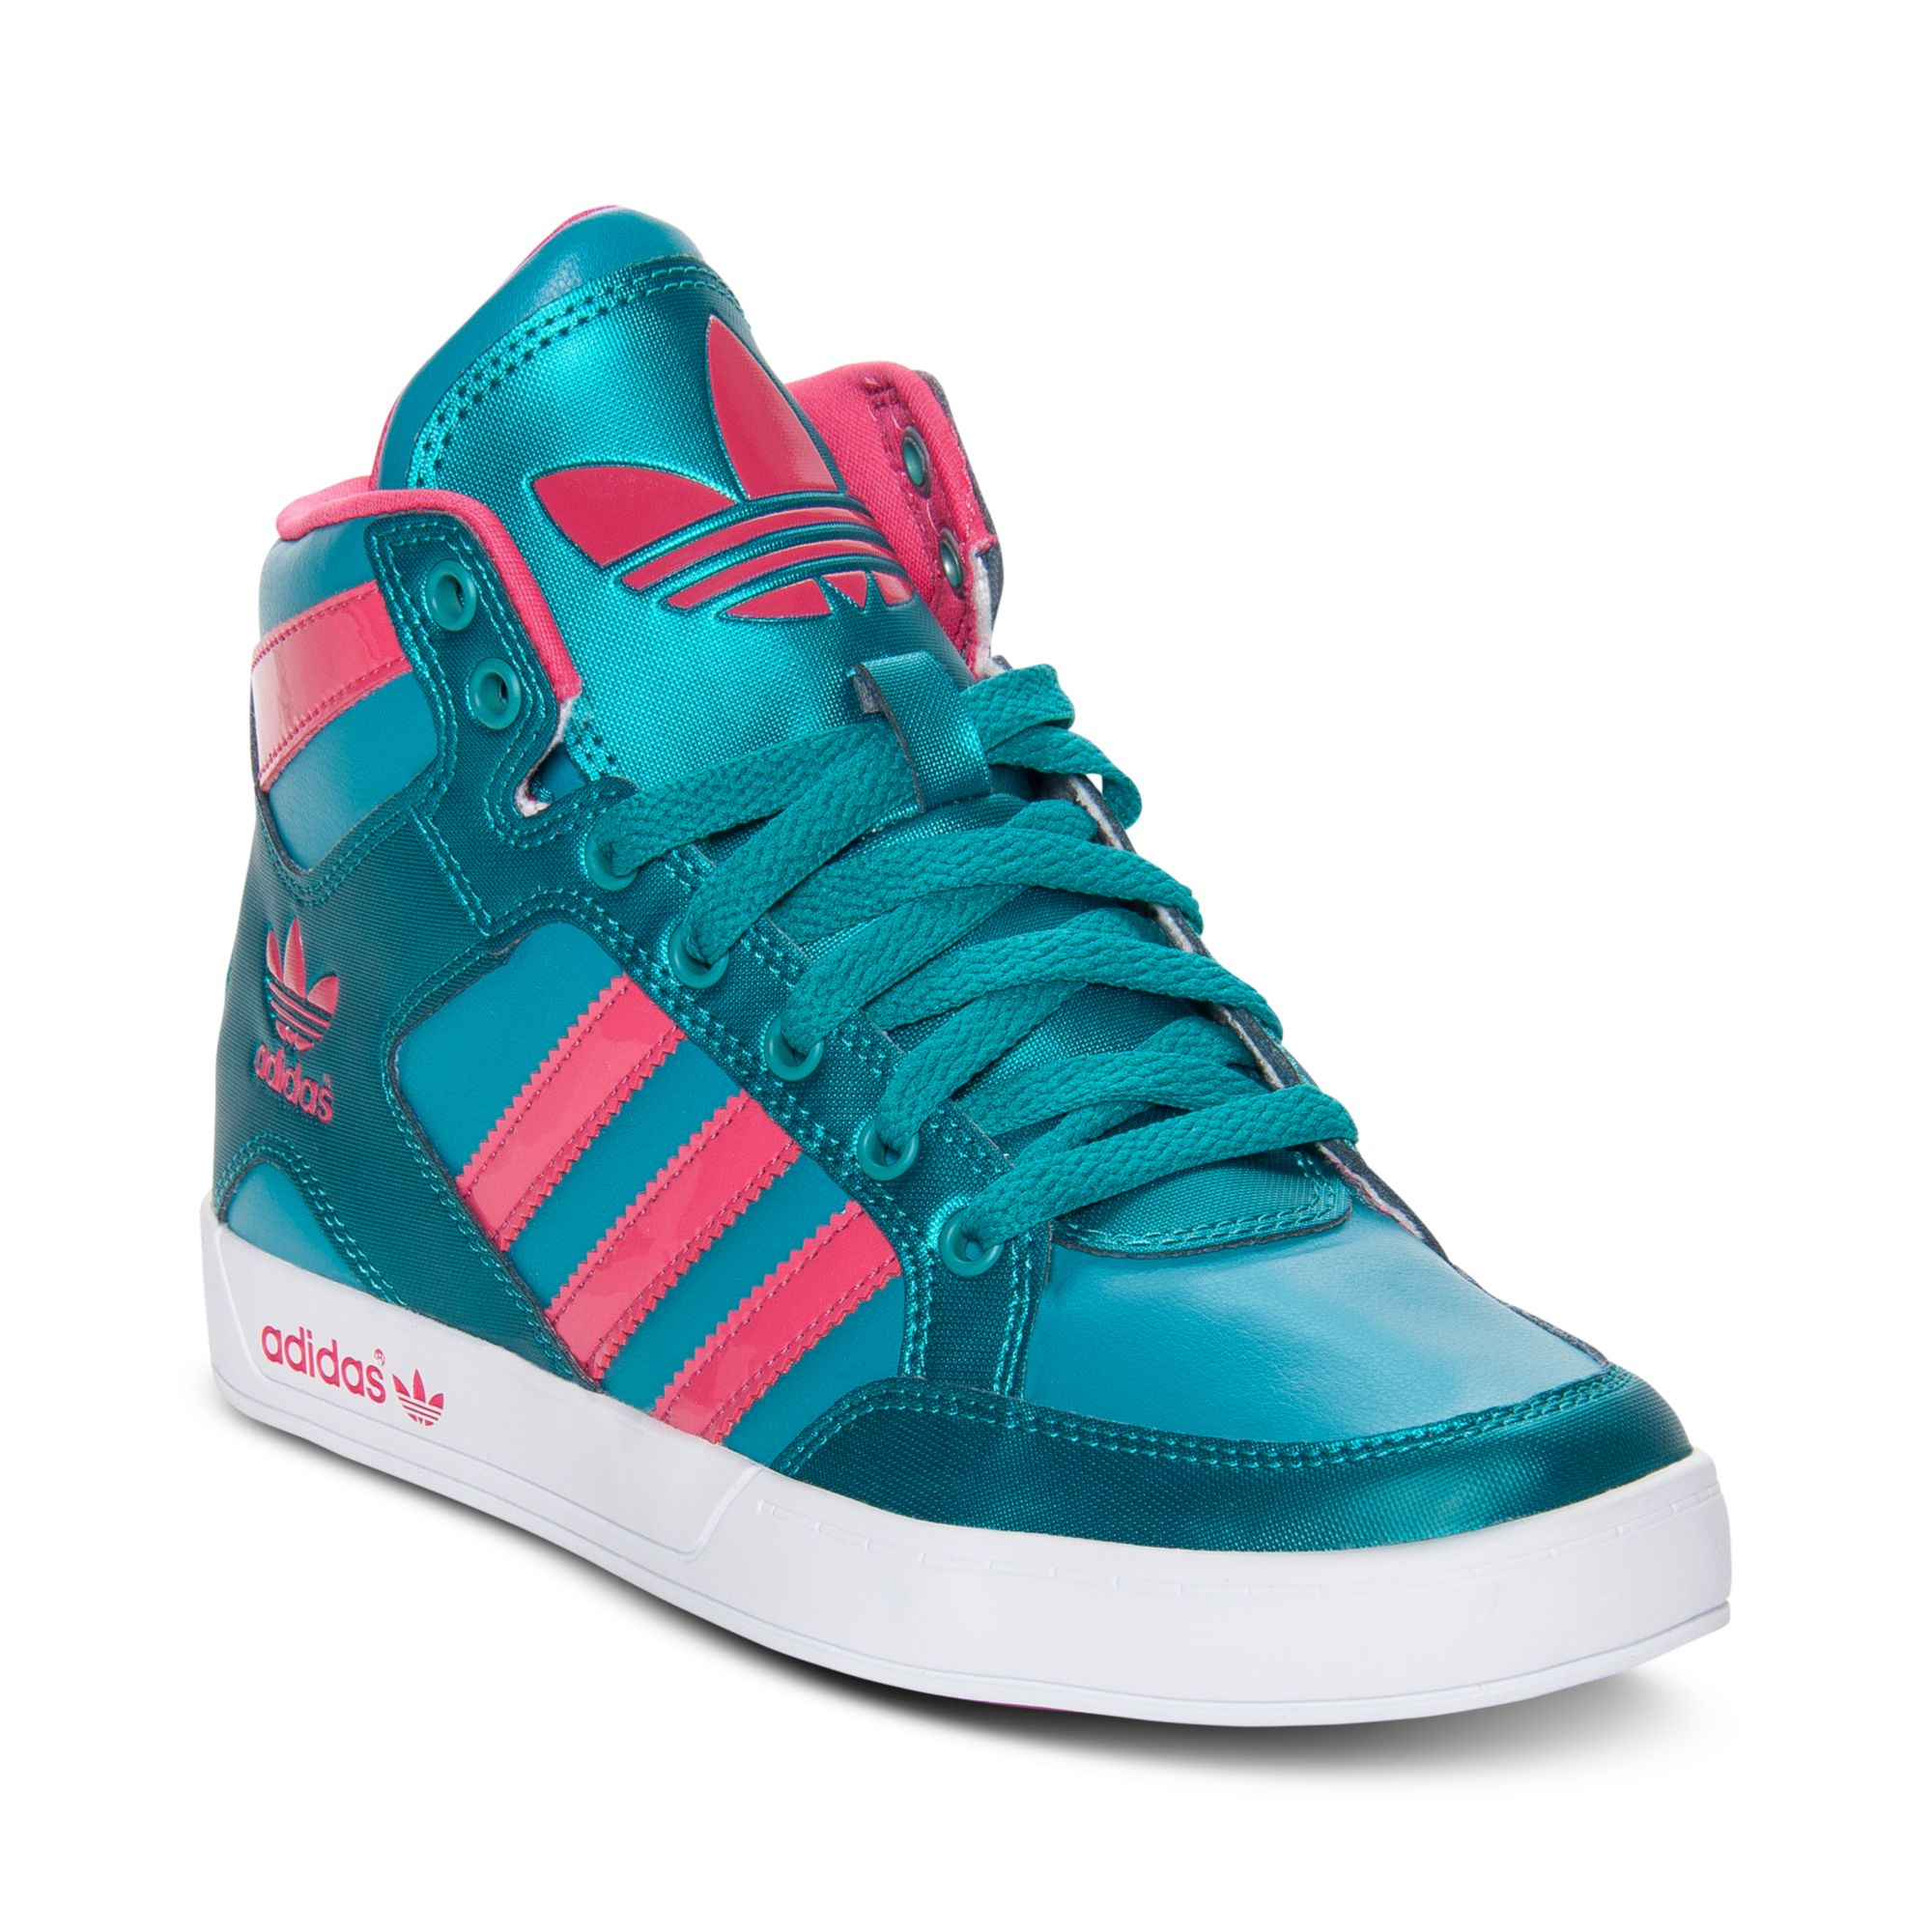 adidas hardcourt high top casual sneakers in green blast emerard blaze pink lyst. Black Bedroom Furniture Sets. Home Design Ideas